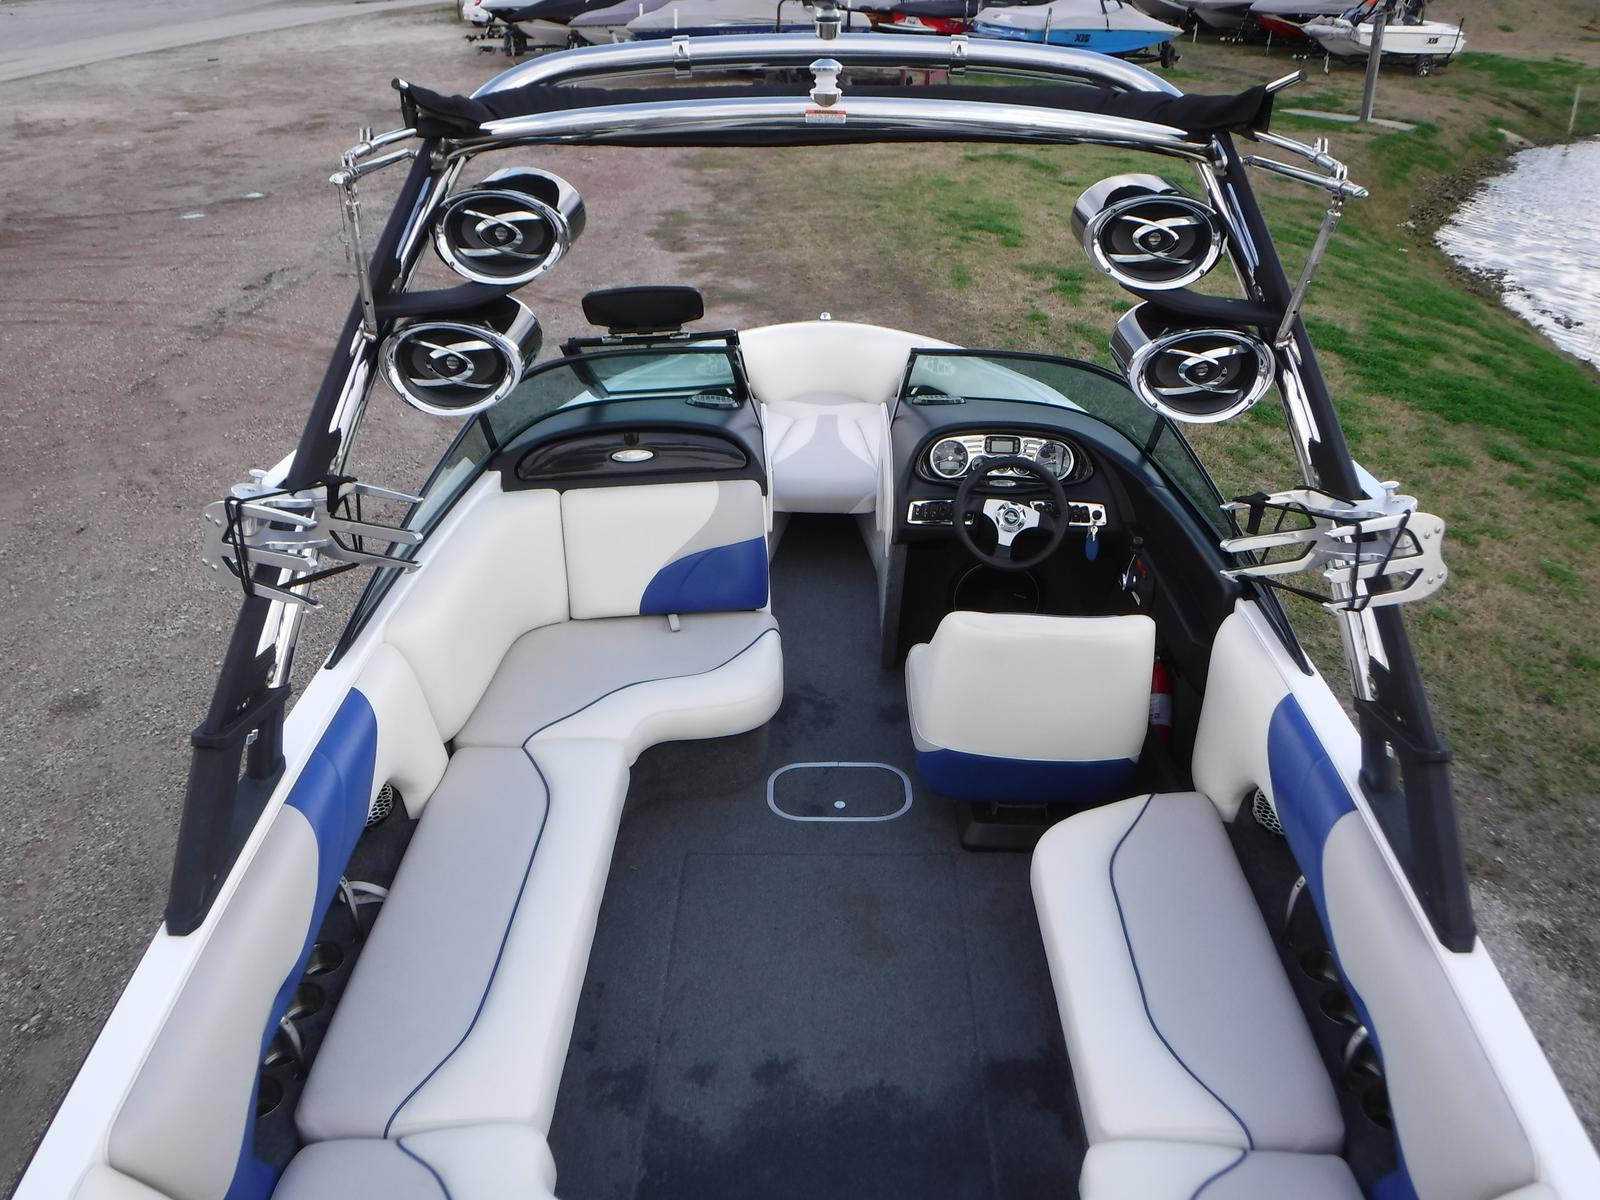 Bird's eye view of the deck of a Malibu Wakesetter Ski Boat